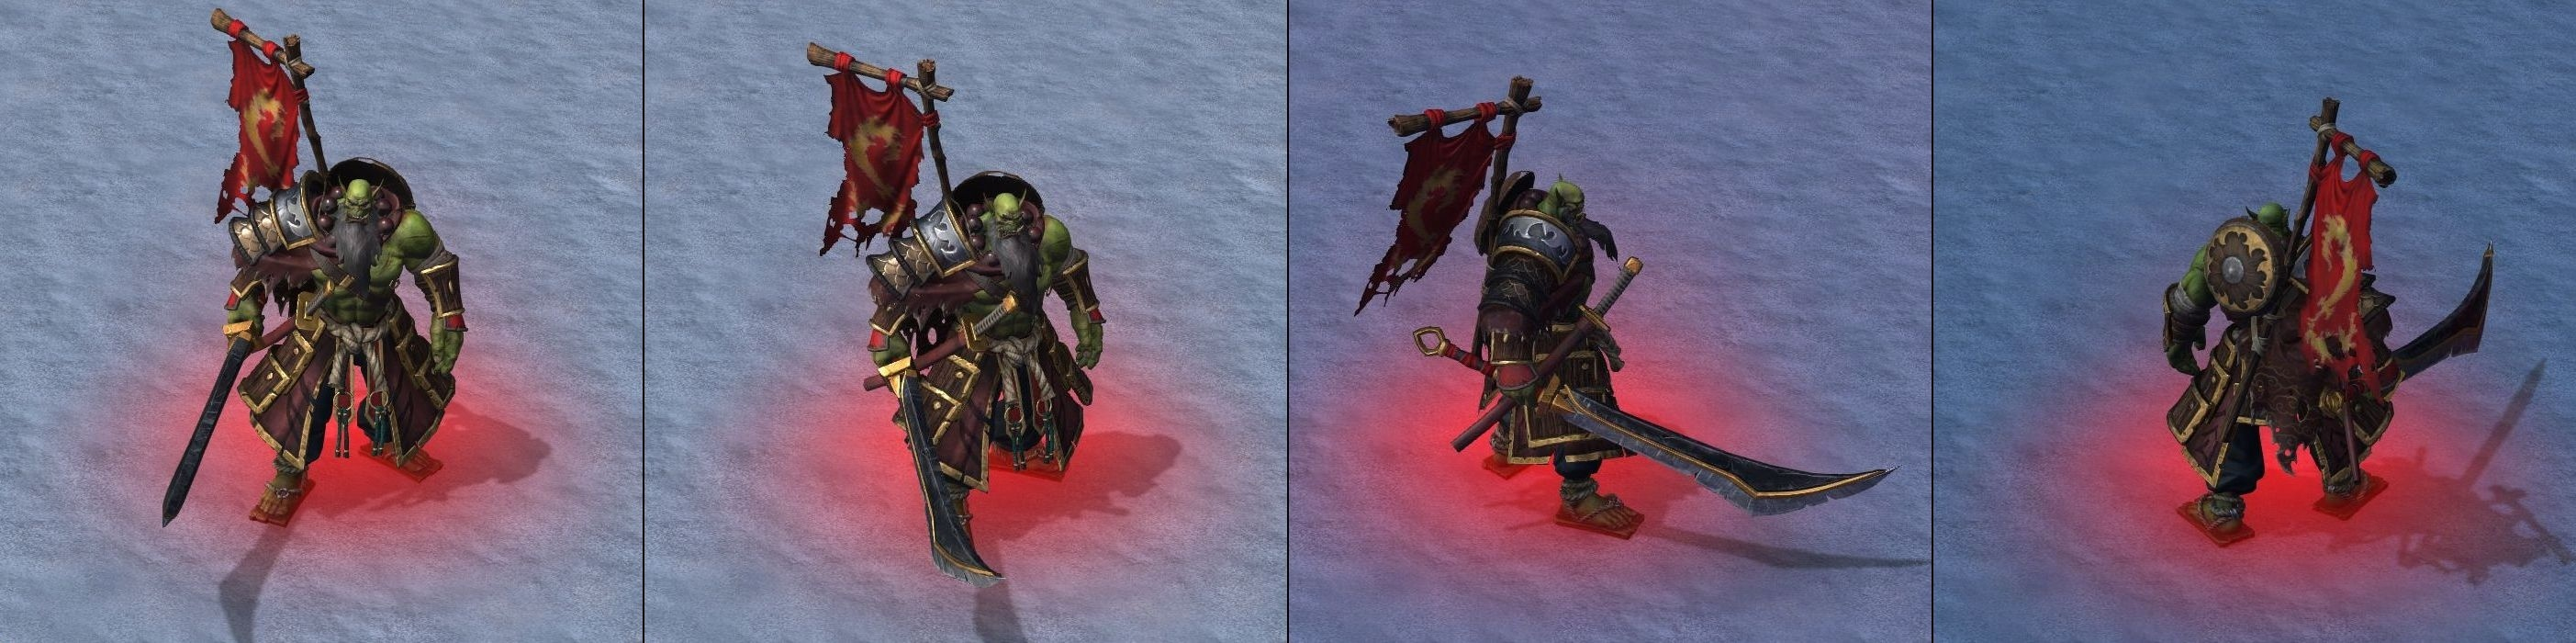 Warcraft 3 Reforged Blademaster